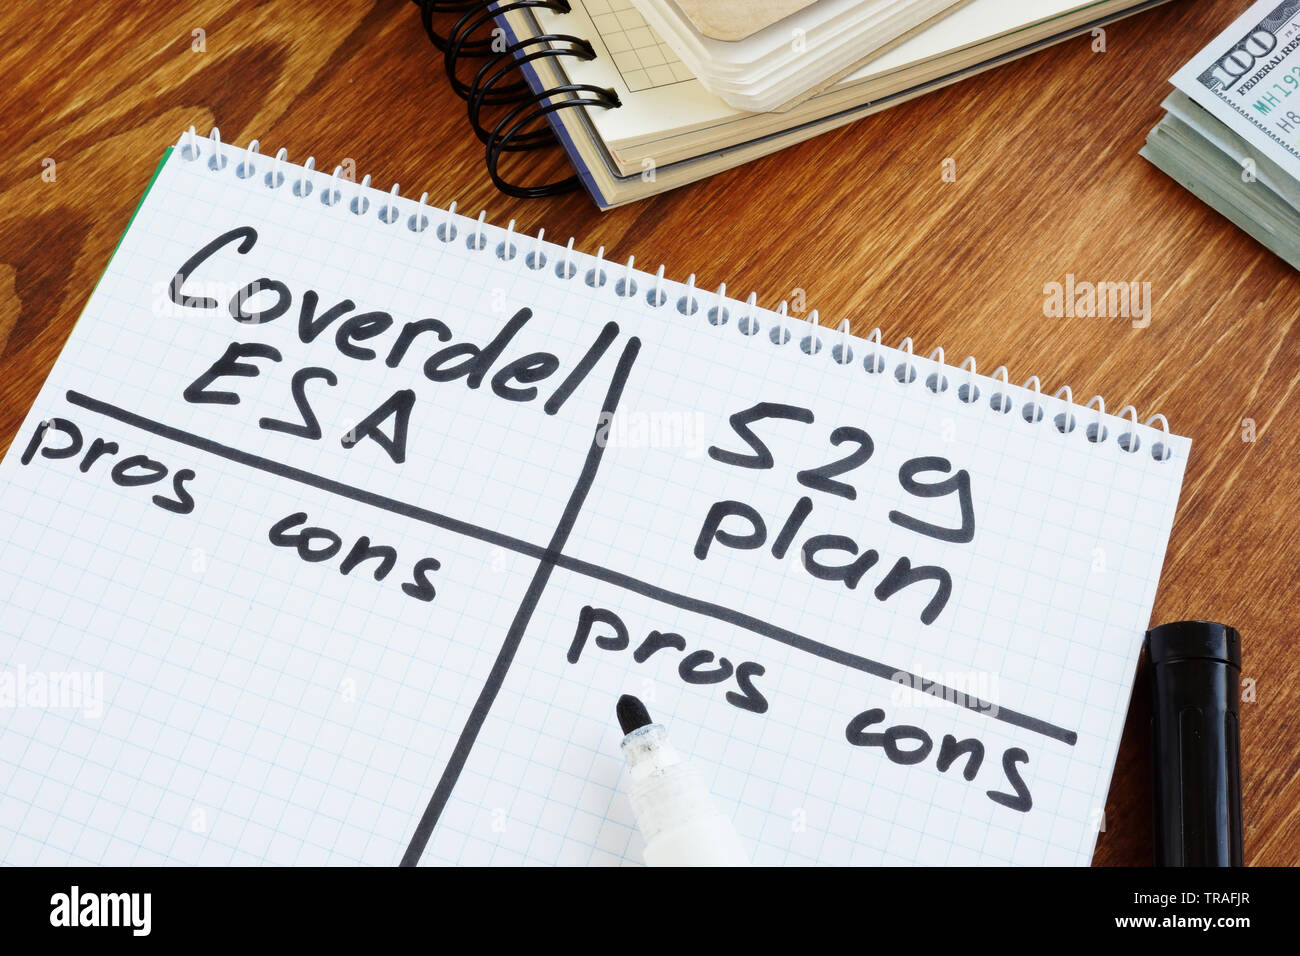 Coverdell esa vs 529 plan pros and cons. - Stock Image